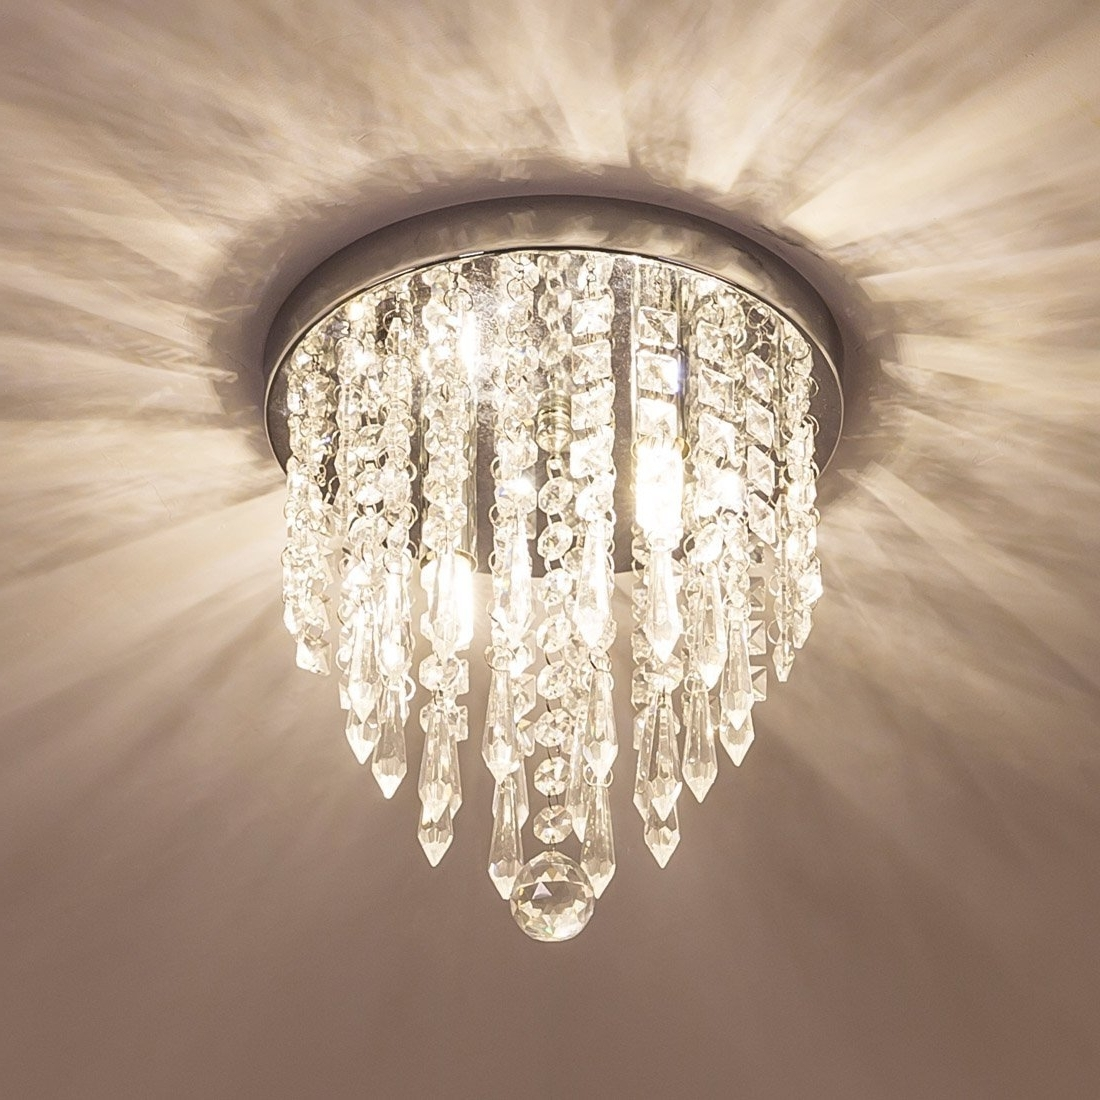 Lighting & Ceiling Fans – Ceiling Lights Intended For Short Chandelier (View 11 of 15)